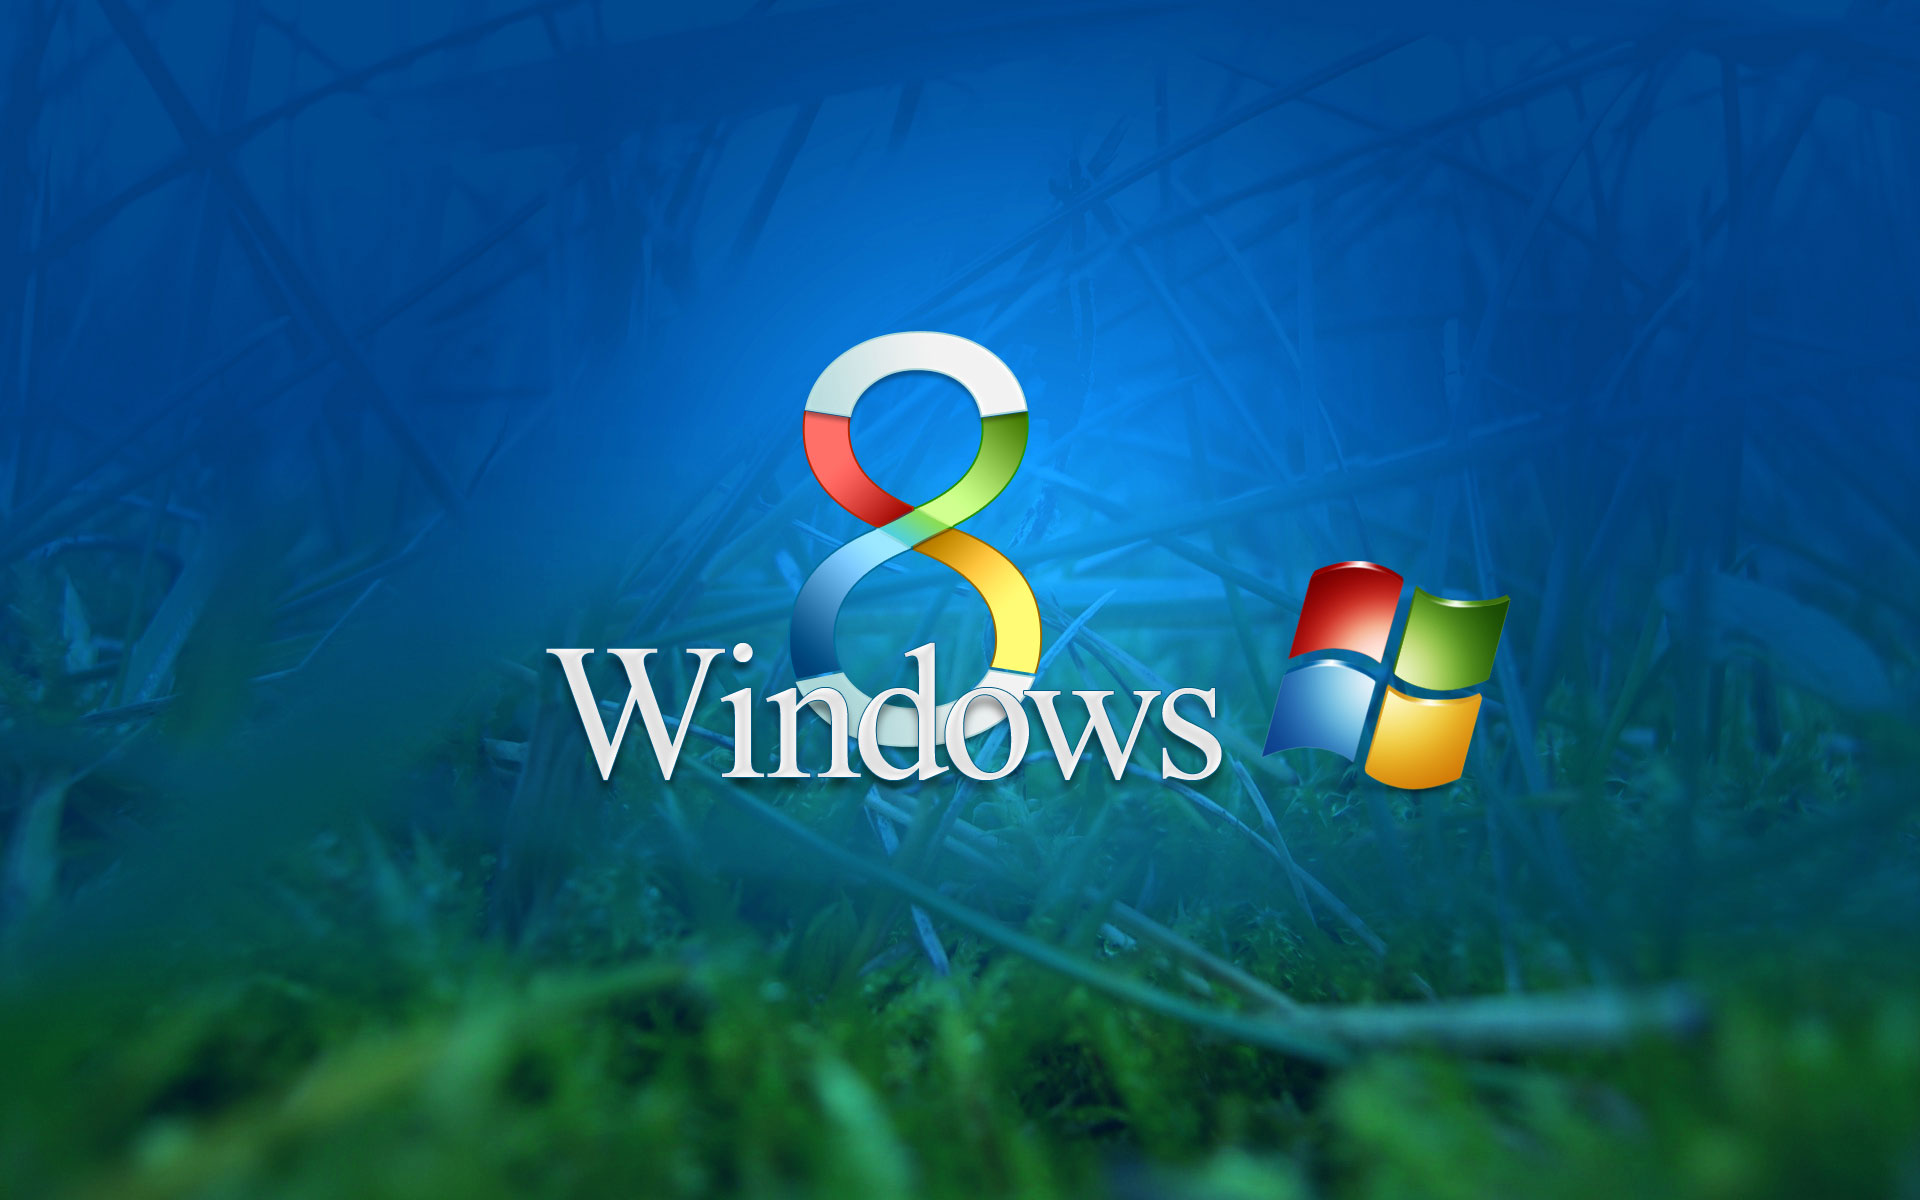 Windows 8 Wallpaper 3